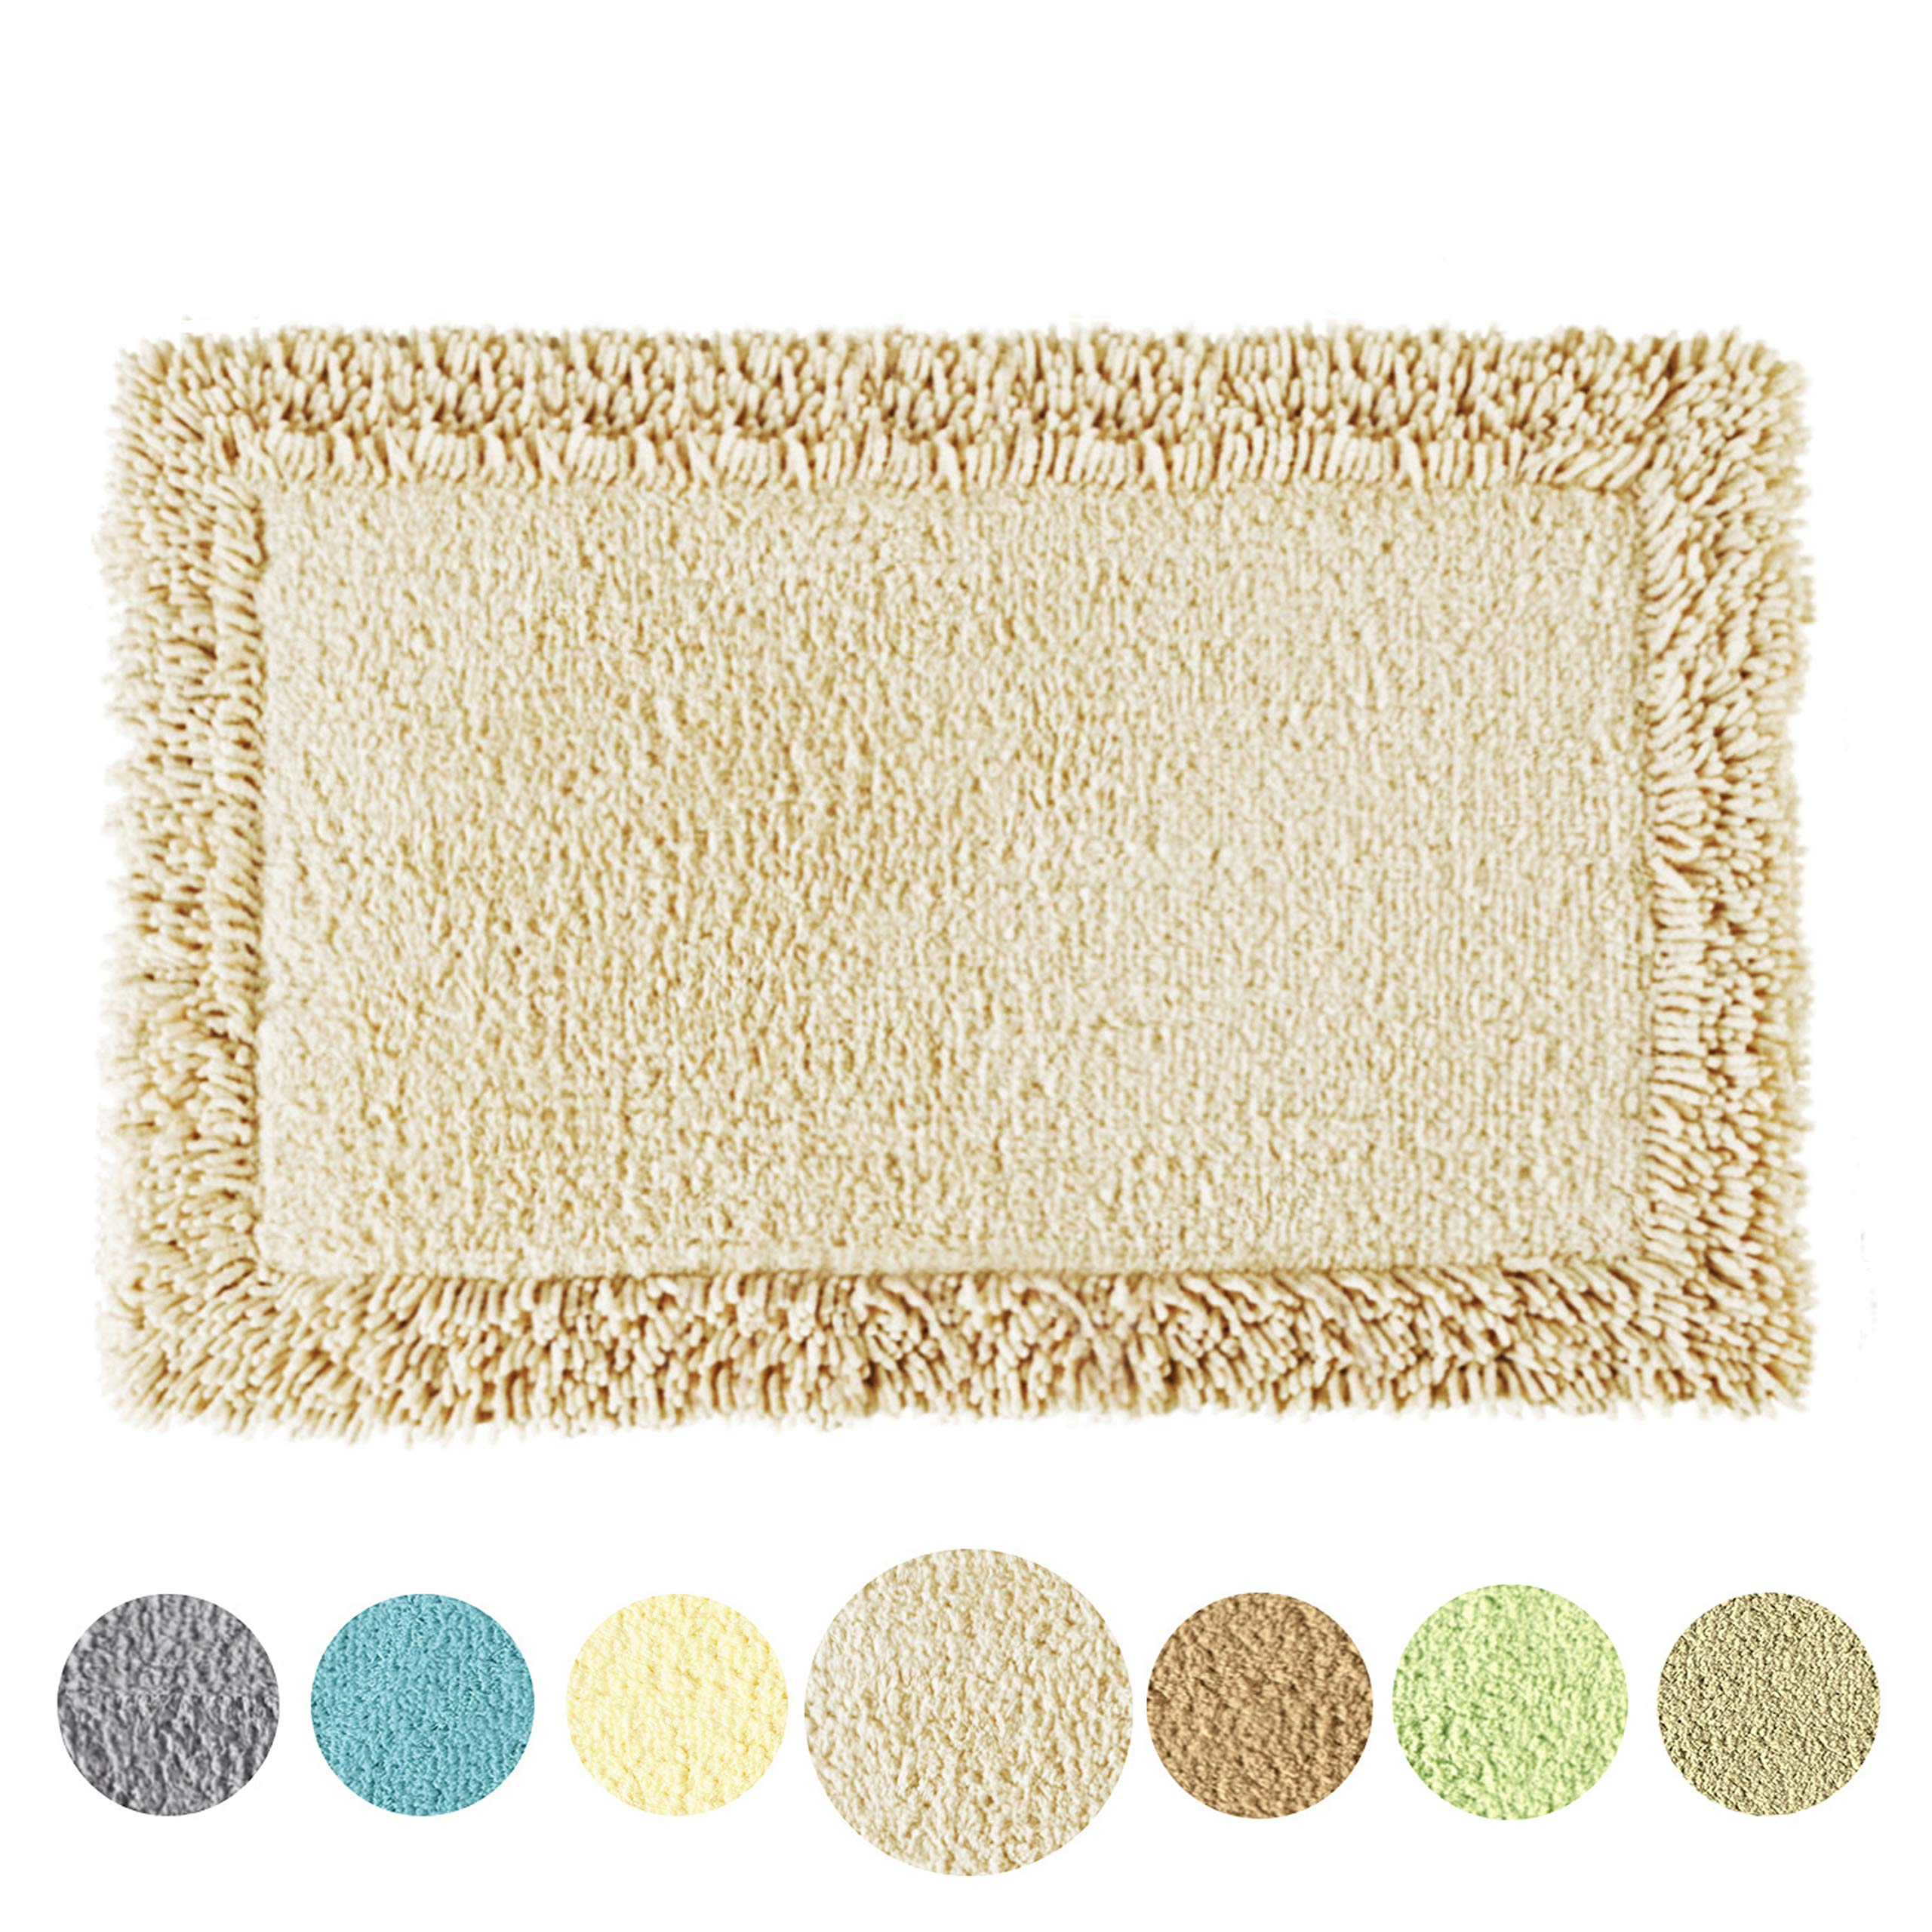 TOMORO Non-Slip Bathroom Rug Super Absorbent Soft Cotton - Luxury Hotel Linens Non-Skid Door and Bath Mat with Non-Slip Rug Pad